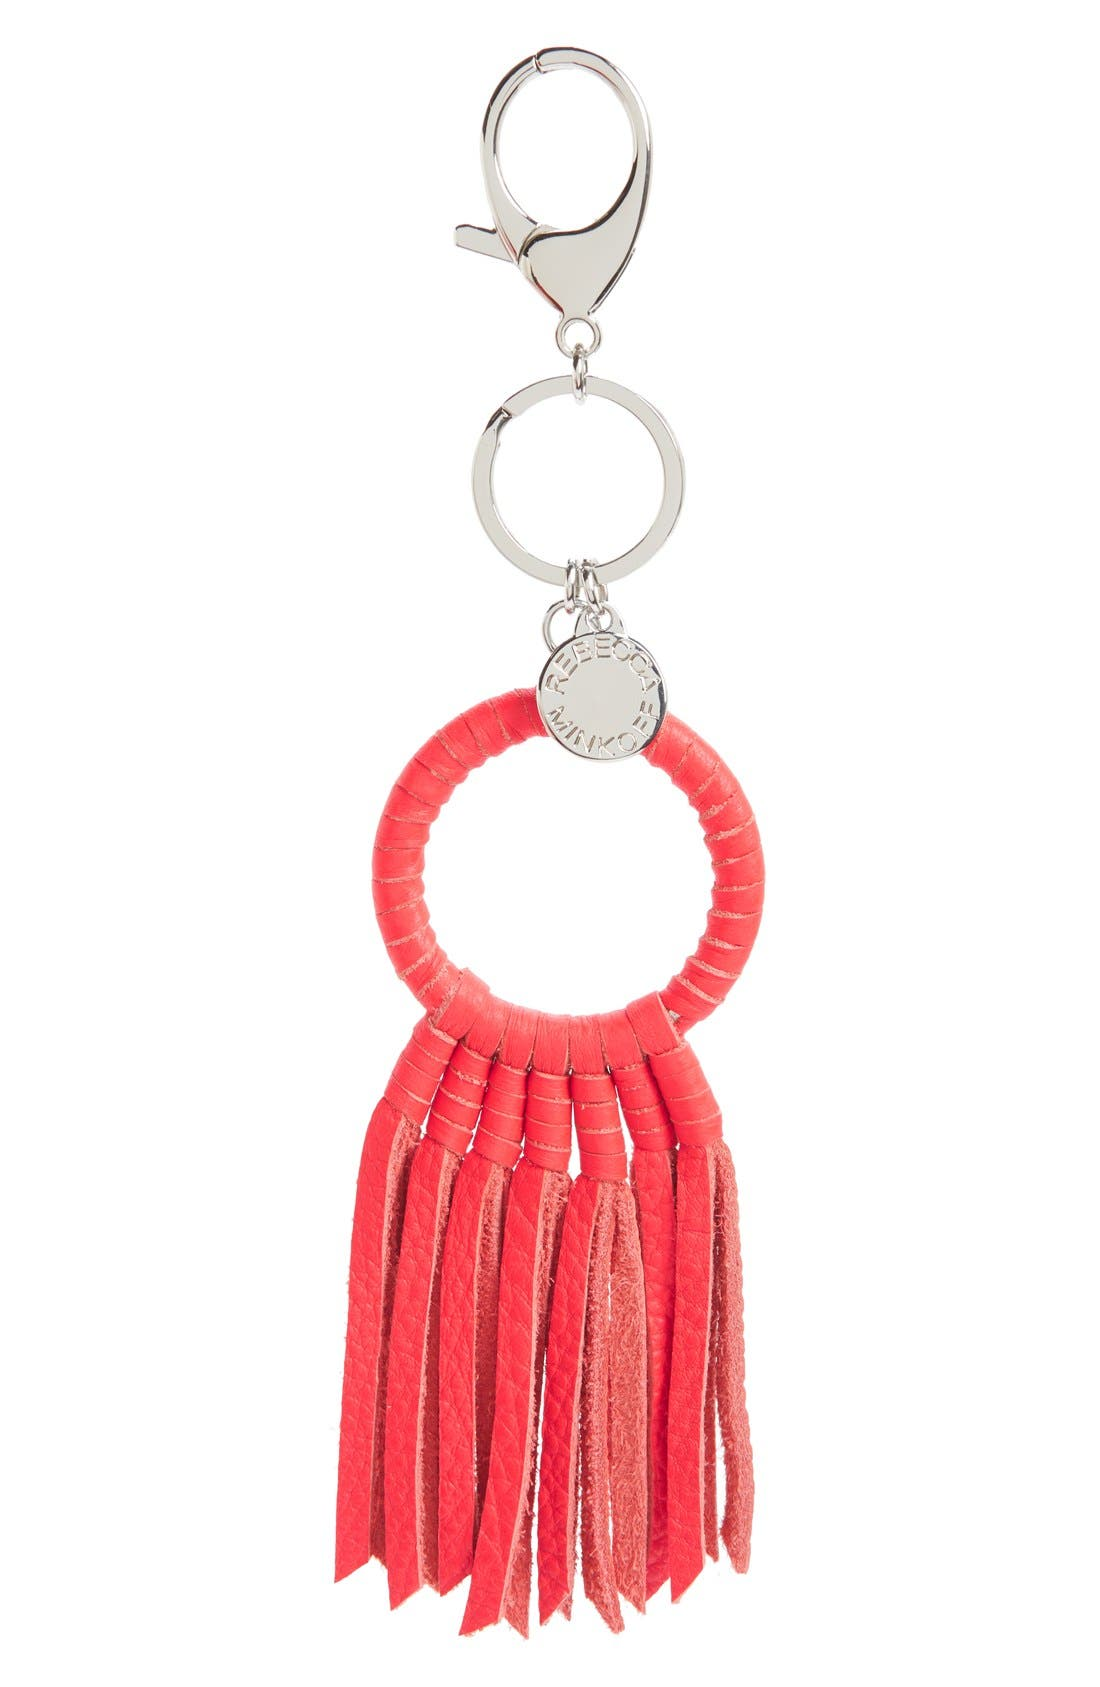 Alternate Image 1 Selected - Rebecca Minkoff 'Hippie' Bag Charm